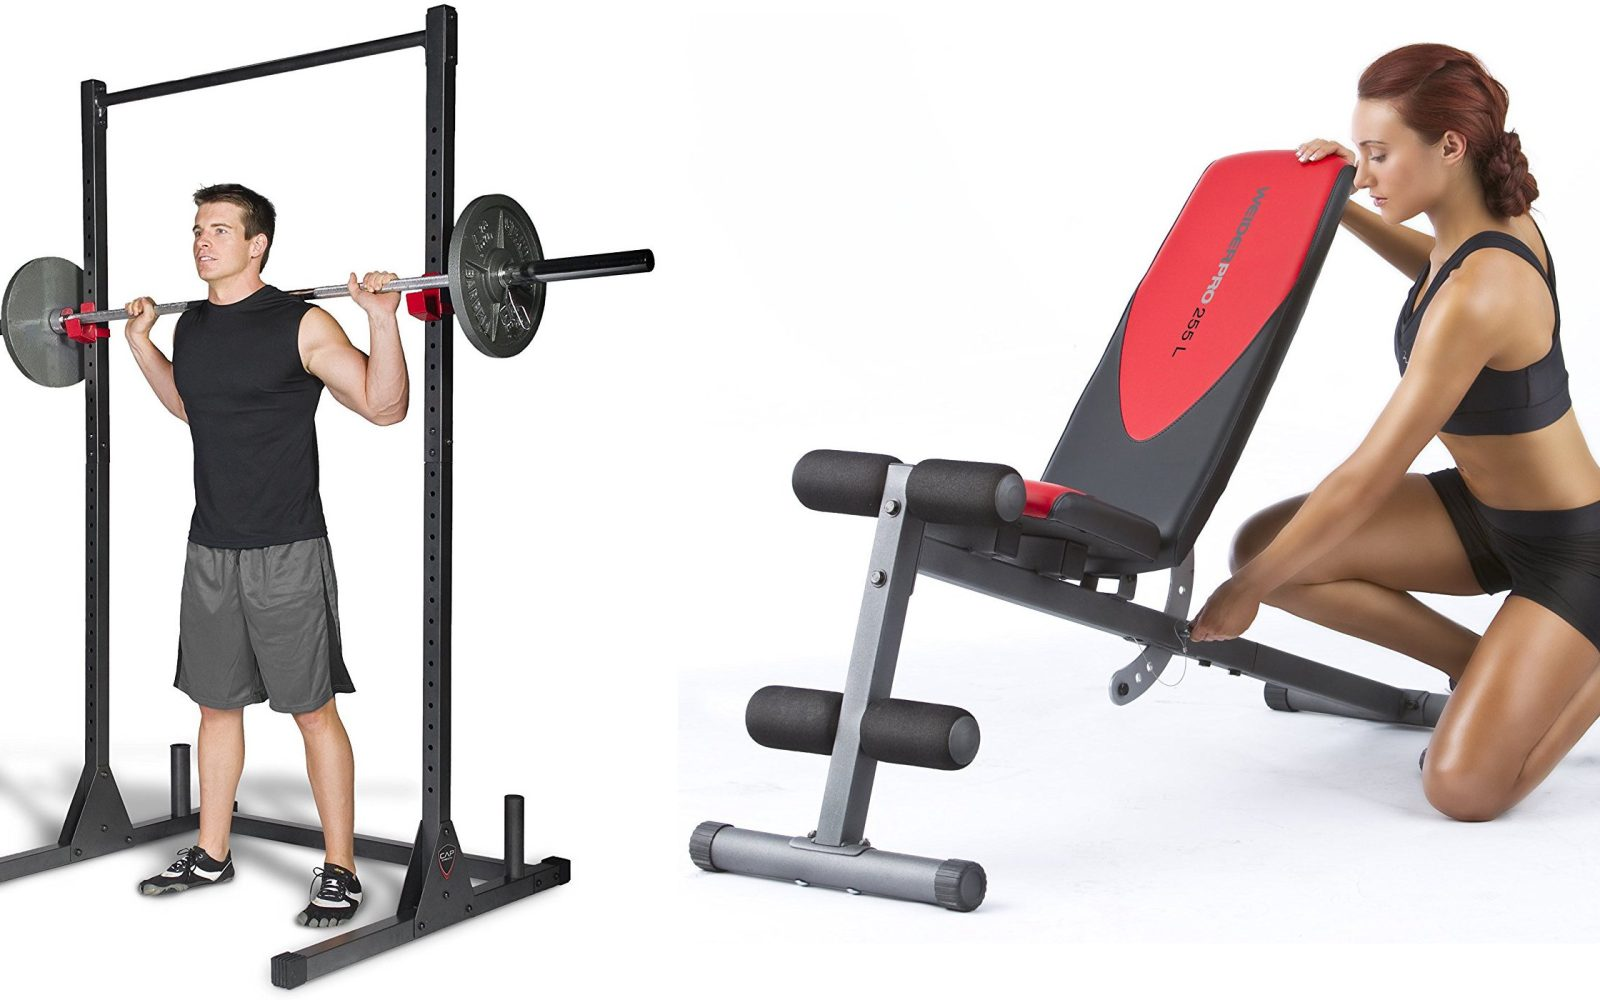 Workout Benches Exercise Stands And More From 27 Prime